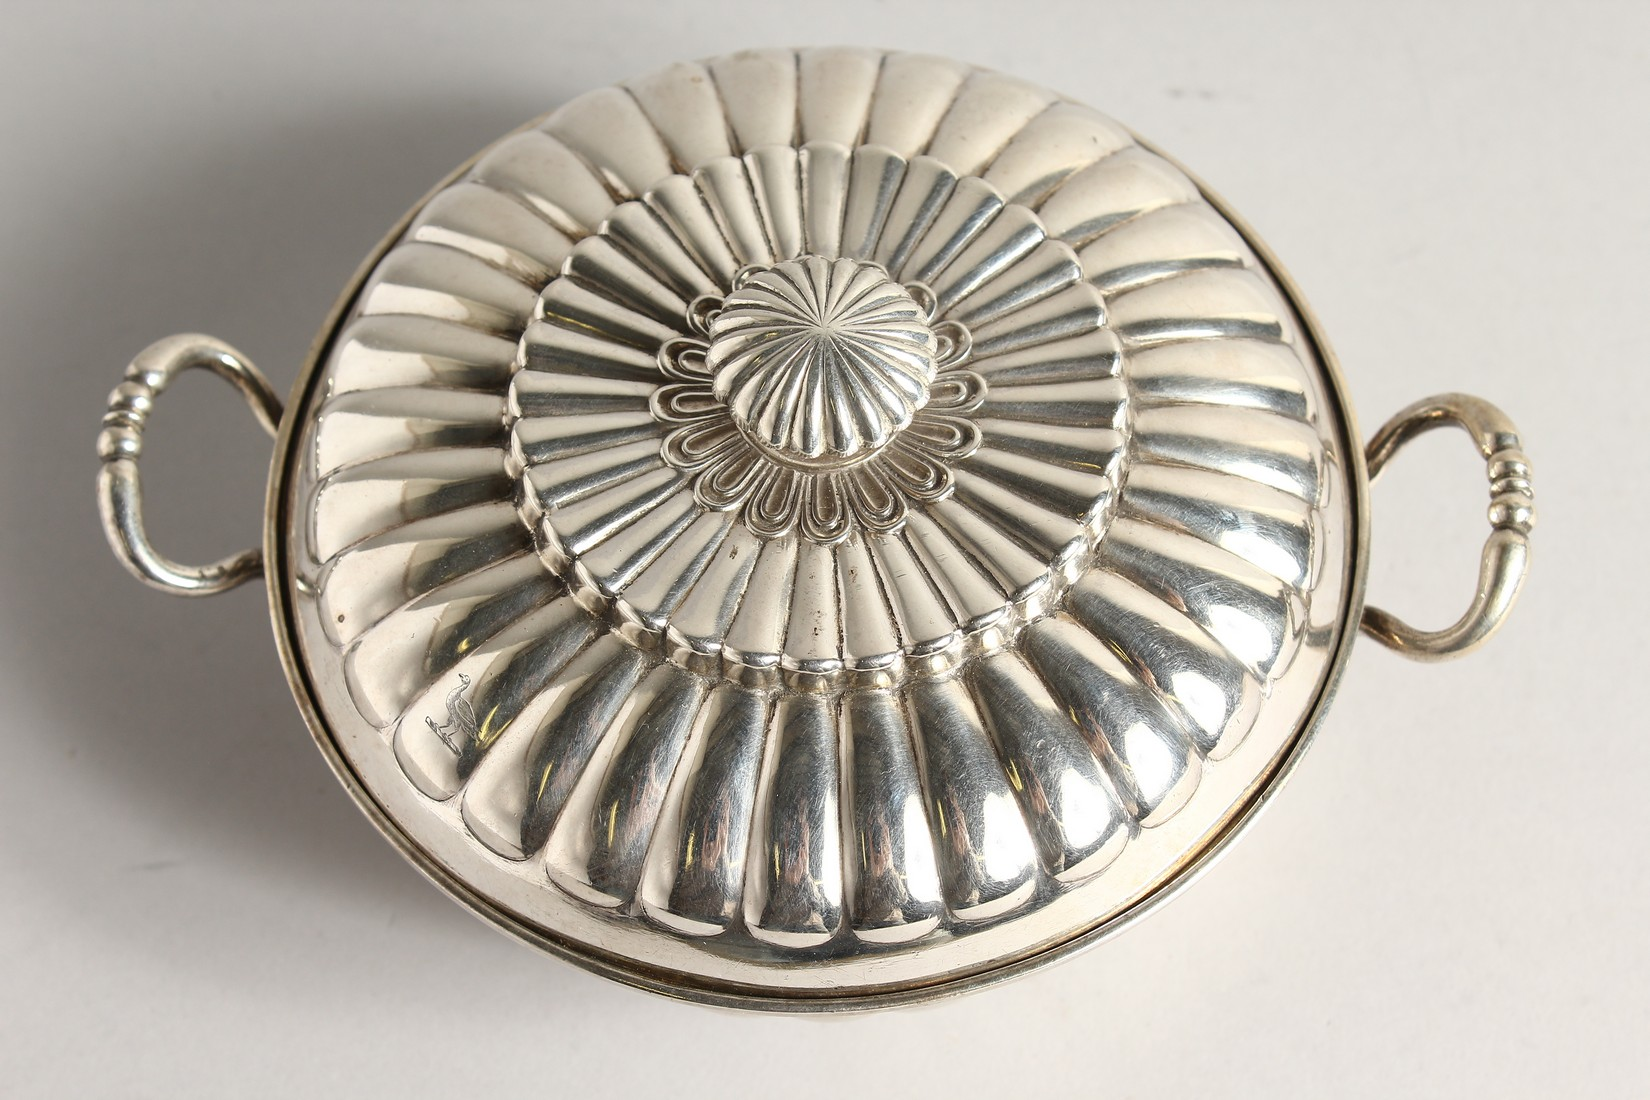 A GEORGE II SILVER CIRCULAR TWO HANDLED ECULLE and cover with fluted decorations. 5.5ins diameter - Image 3 of 7